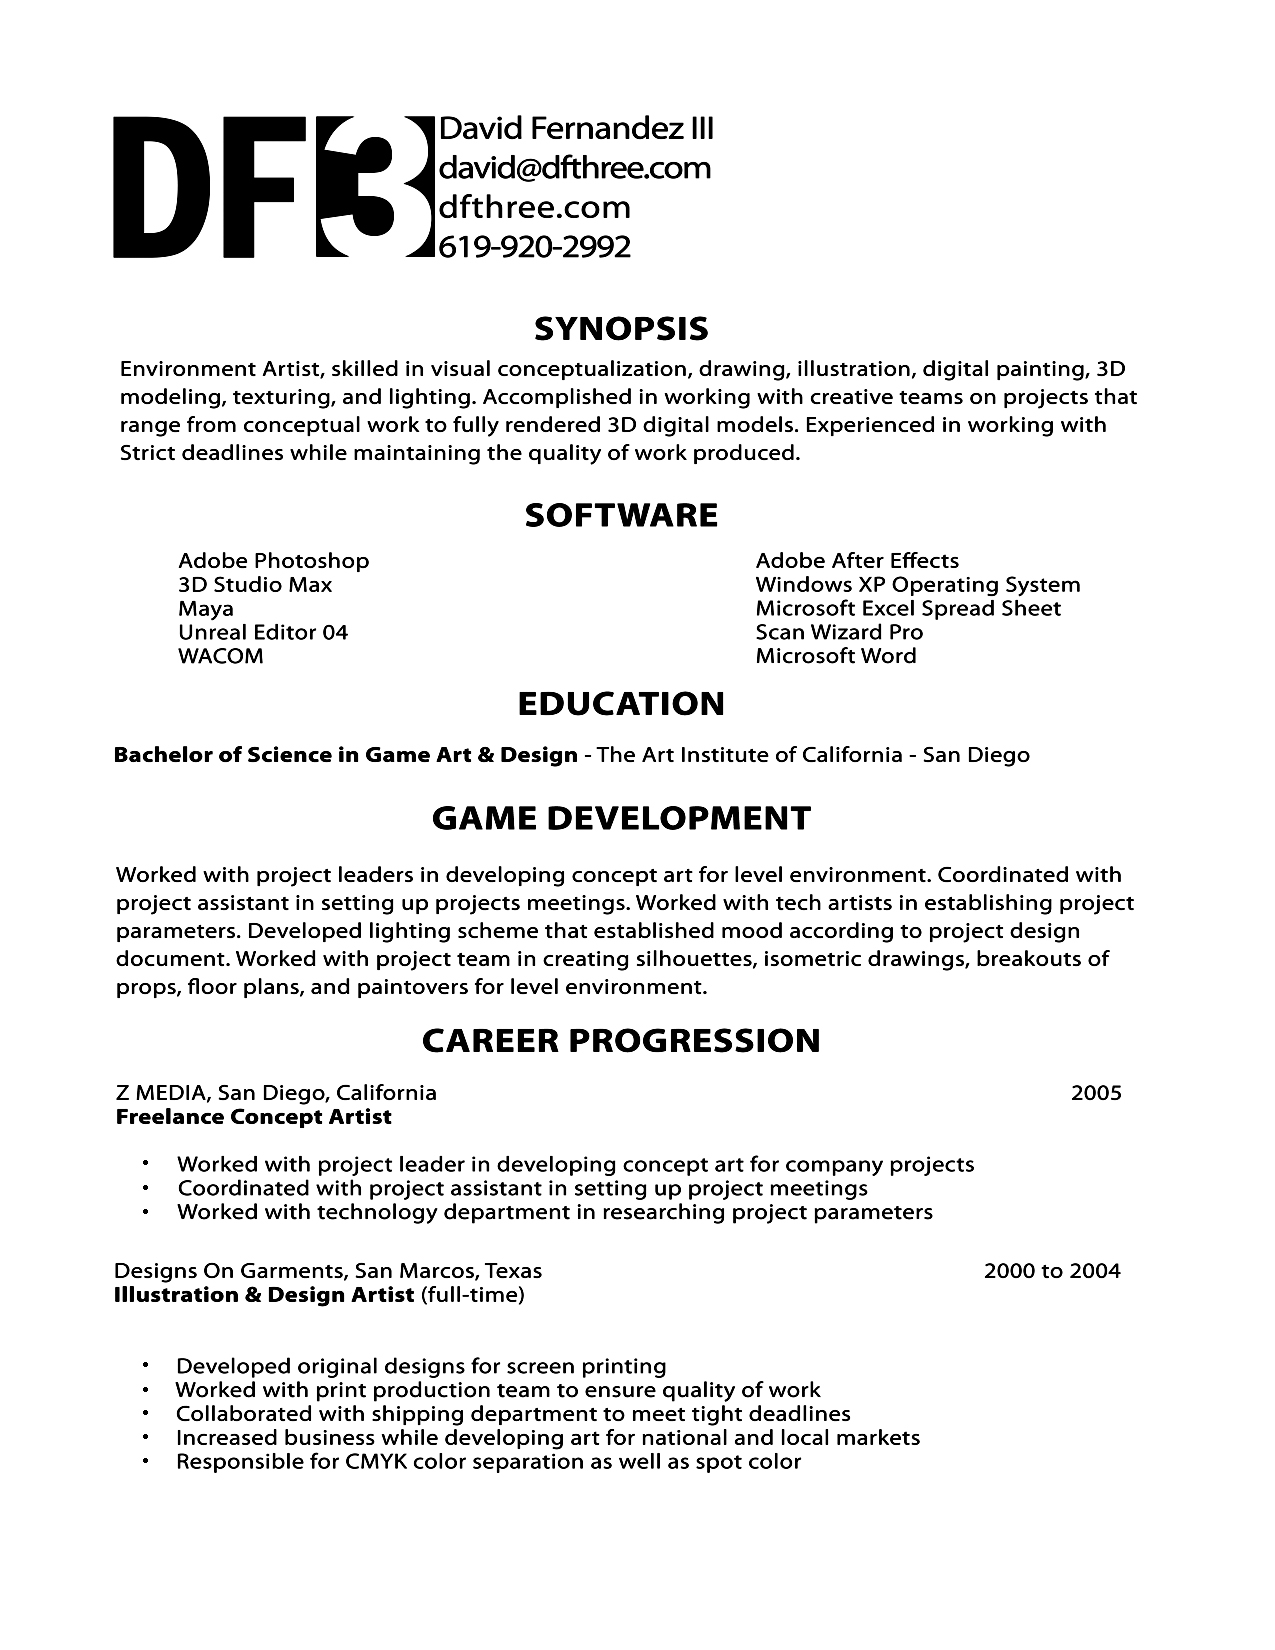 Opposenewapstandardsus  Terrific Game Developer Resume Game Tester Resume Sample Game Tester  With Inspiring Better Jobs Faster With Cool Free Resume Templates Download Also What Is A Cover Letter For Resume In Addition Assistant Manager Resume And Finance Resume As Well As Sales Associate Job Description Resume Additionally Customer Service Resume Skills From Kelseymarieco With Opposenewapstandardsus  Inspiring Game Developer Resume Game Tester Resume Sample Game Tester  With Cool Better Jobs Faster And Terrific Free Resume Templates Download Also What Is A Cover Letter For Resume In Addition Assistant Manager Resume From Kelseymarieco